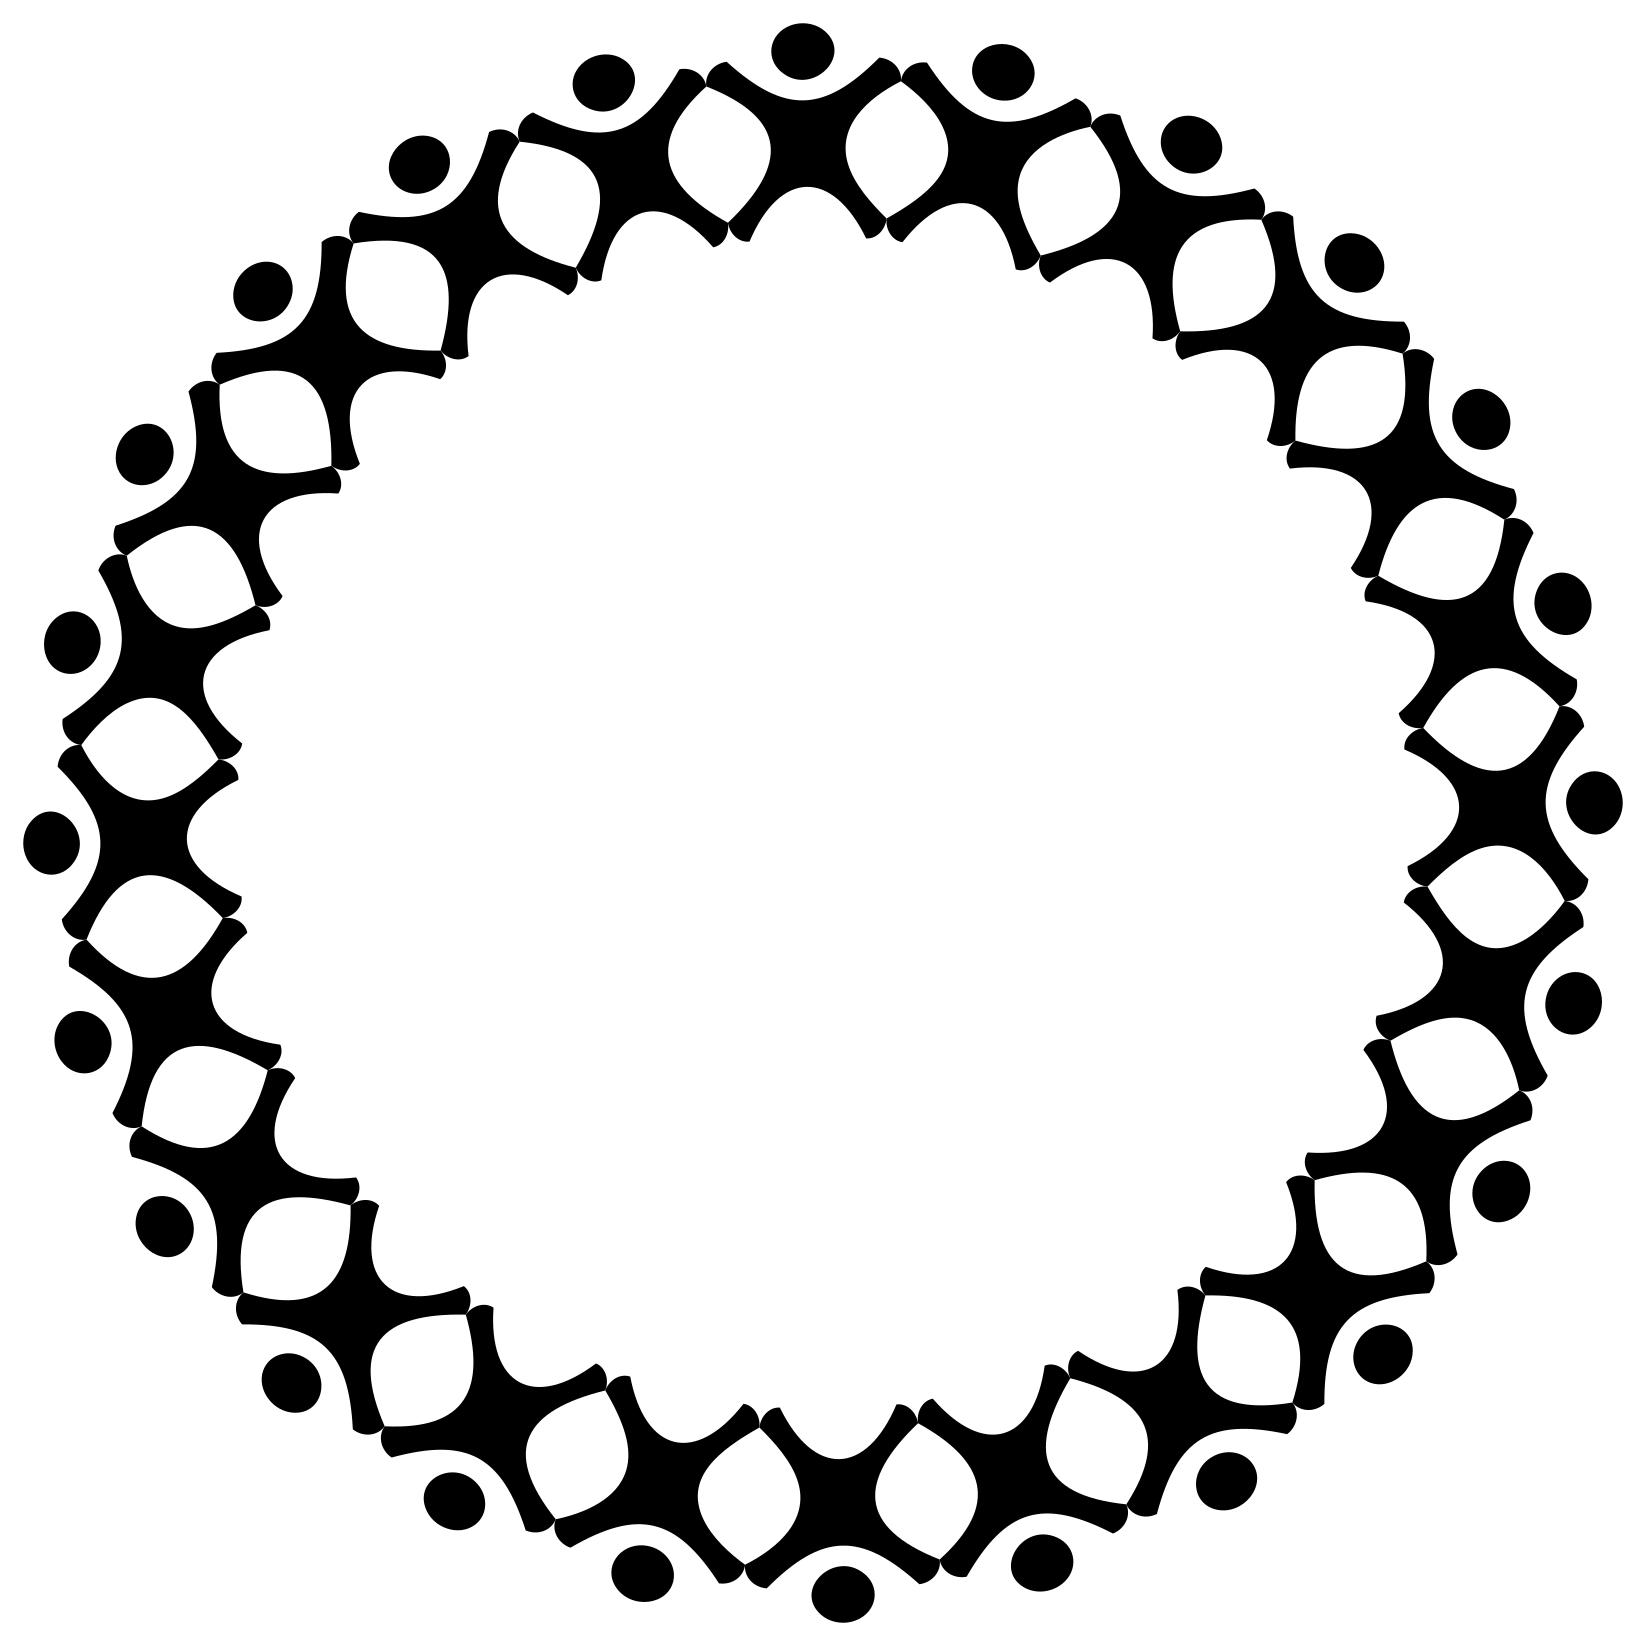 Circle clipart papermilkdesign.